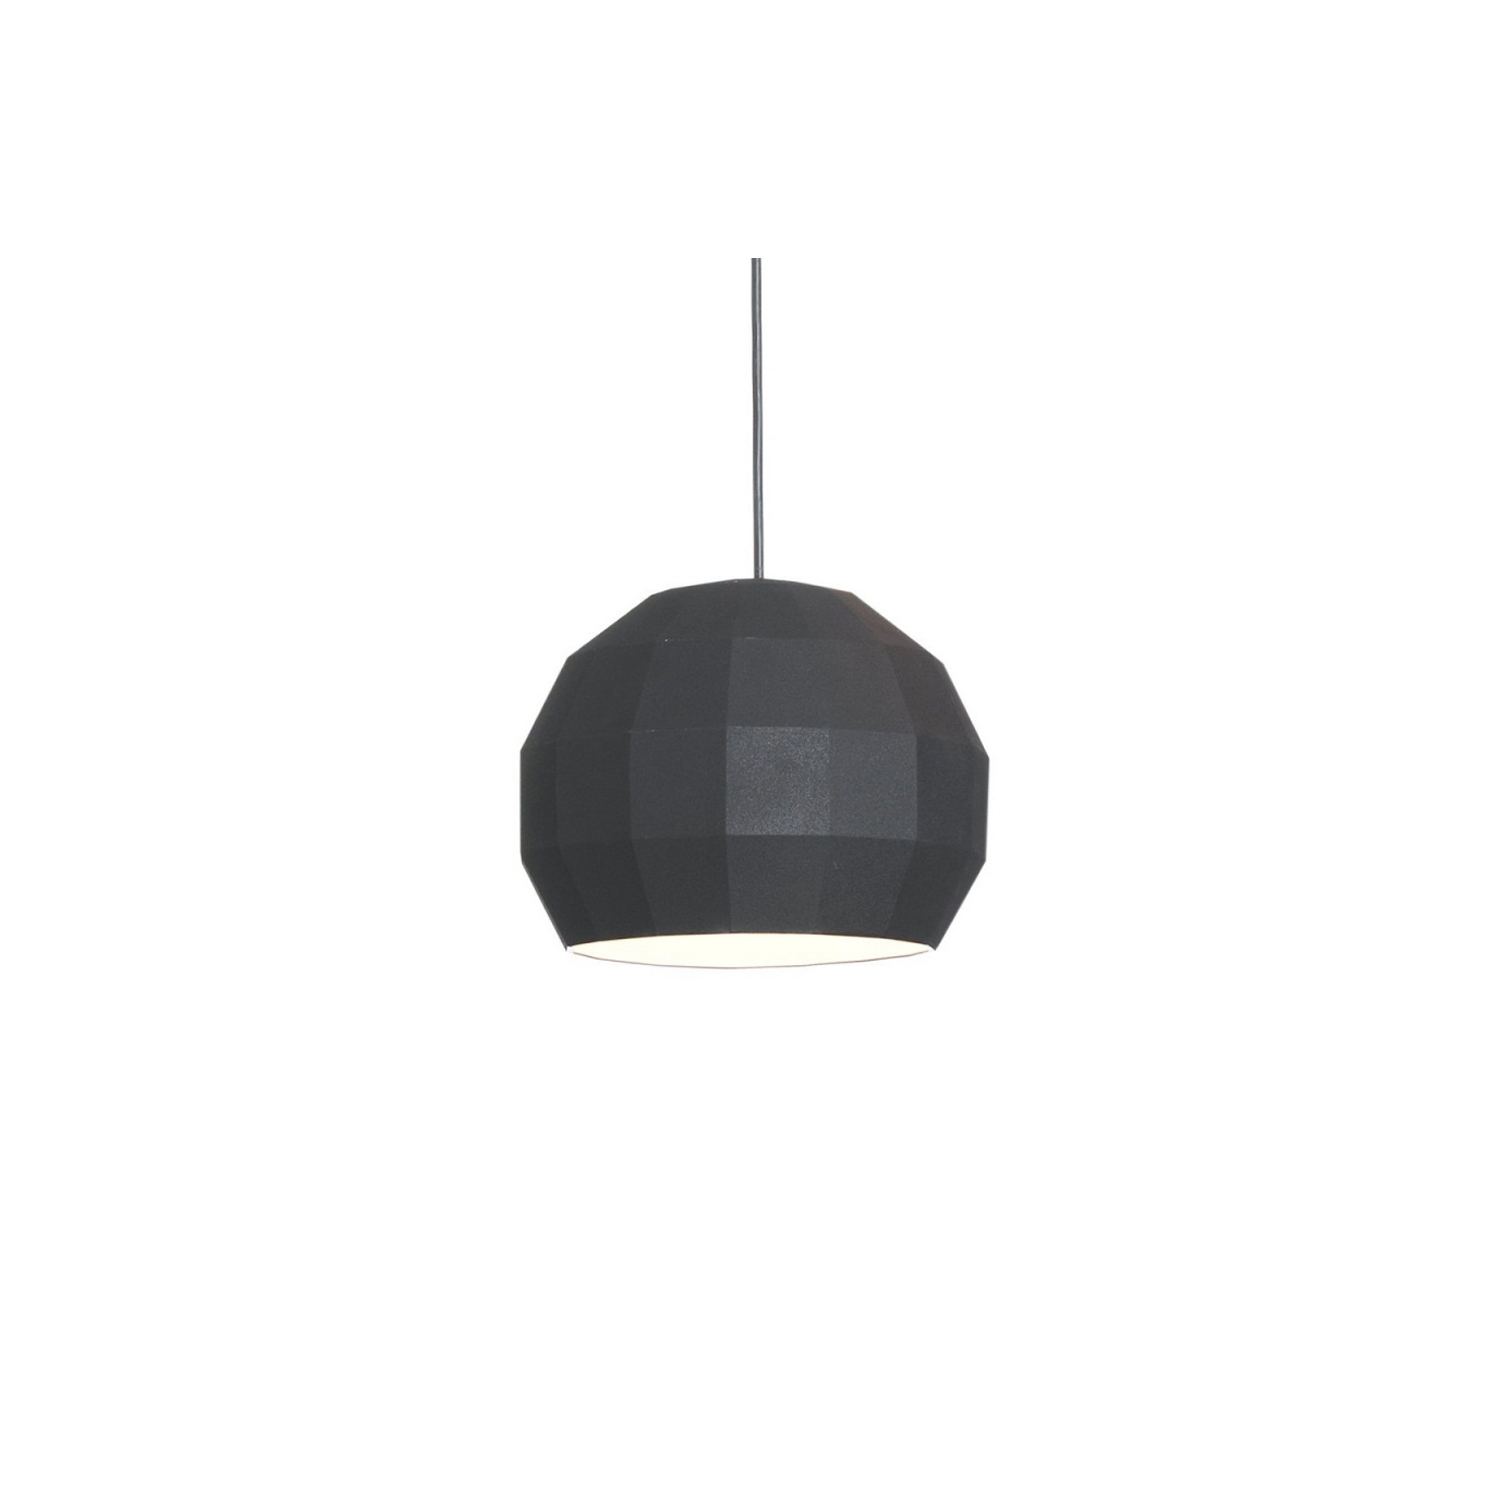 Scotch Club 41 Pendant Light - <p>Pottery Scotch Club collection is a tribute to the disco mirror ball, consisting of 72 facets that reflect light from the inside in various directions, producing a complex visual effect. Scotch Club is the result of the last collaboration between Xavier Mañosa and Mashallah.</p> <p>Pendant light available in 3 sizes: 17.4cm diameter, 26.5cm diameter and 41.2cm diameter. Available in the following finishes: white-white, white-gold, blue-white, blue-gold, terracotta-white, terracotta-gold, black-white and black-gold.</p>The cord length is 200cm.  | Matter of Stuff